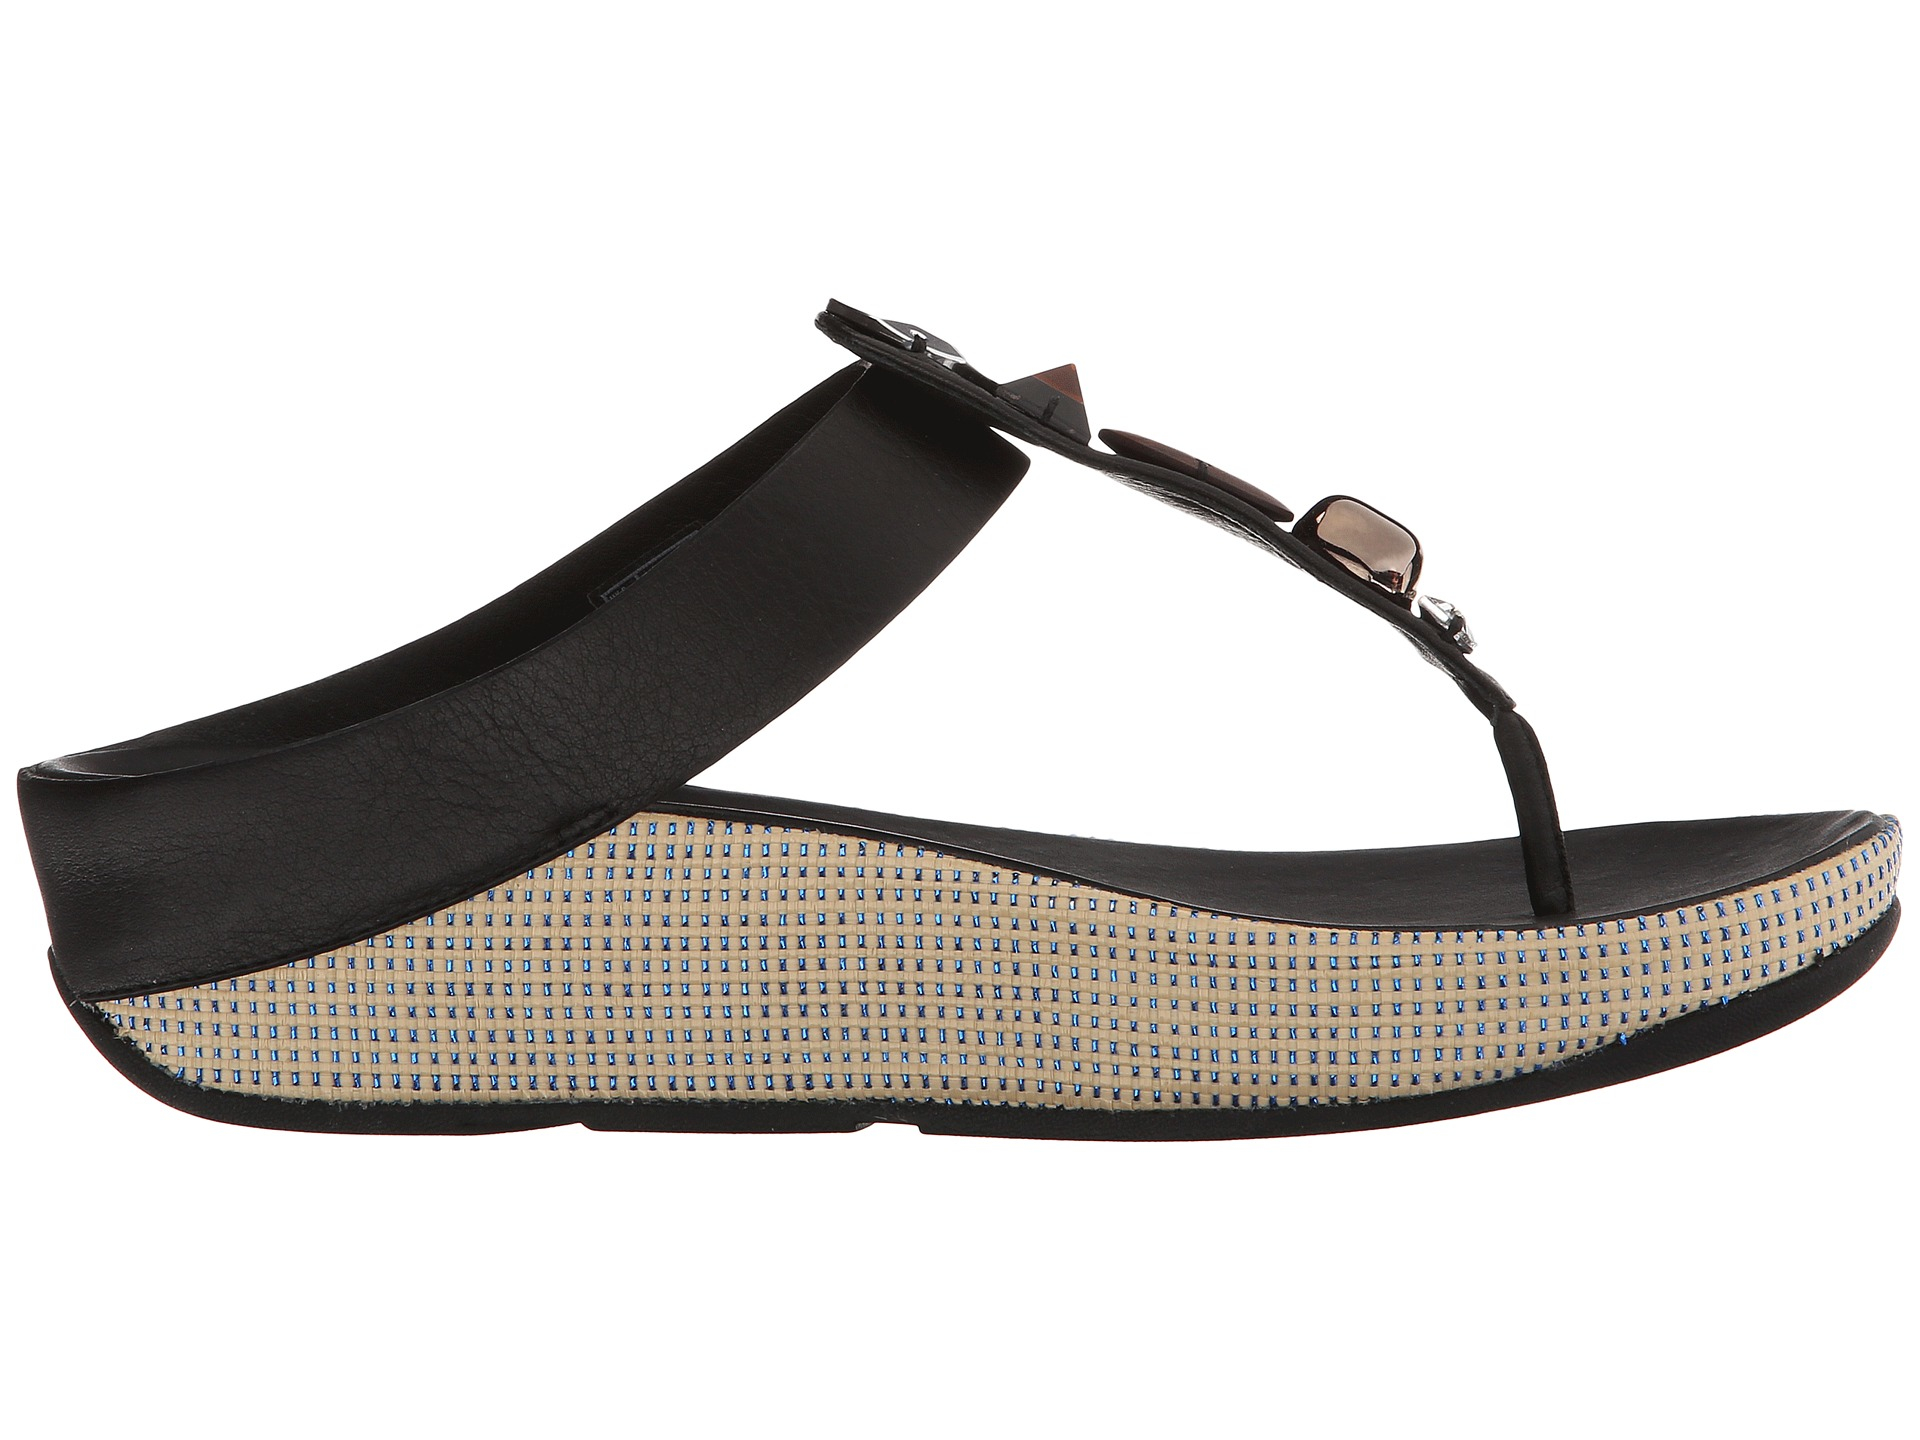 35eac4d937d8 Lyst - Fitflop Jeweley Toe Post in Black